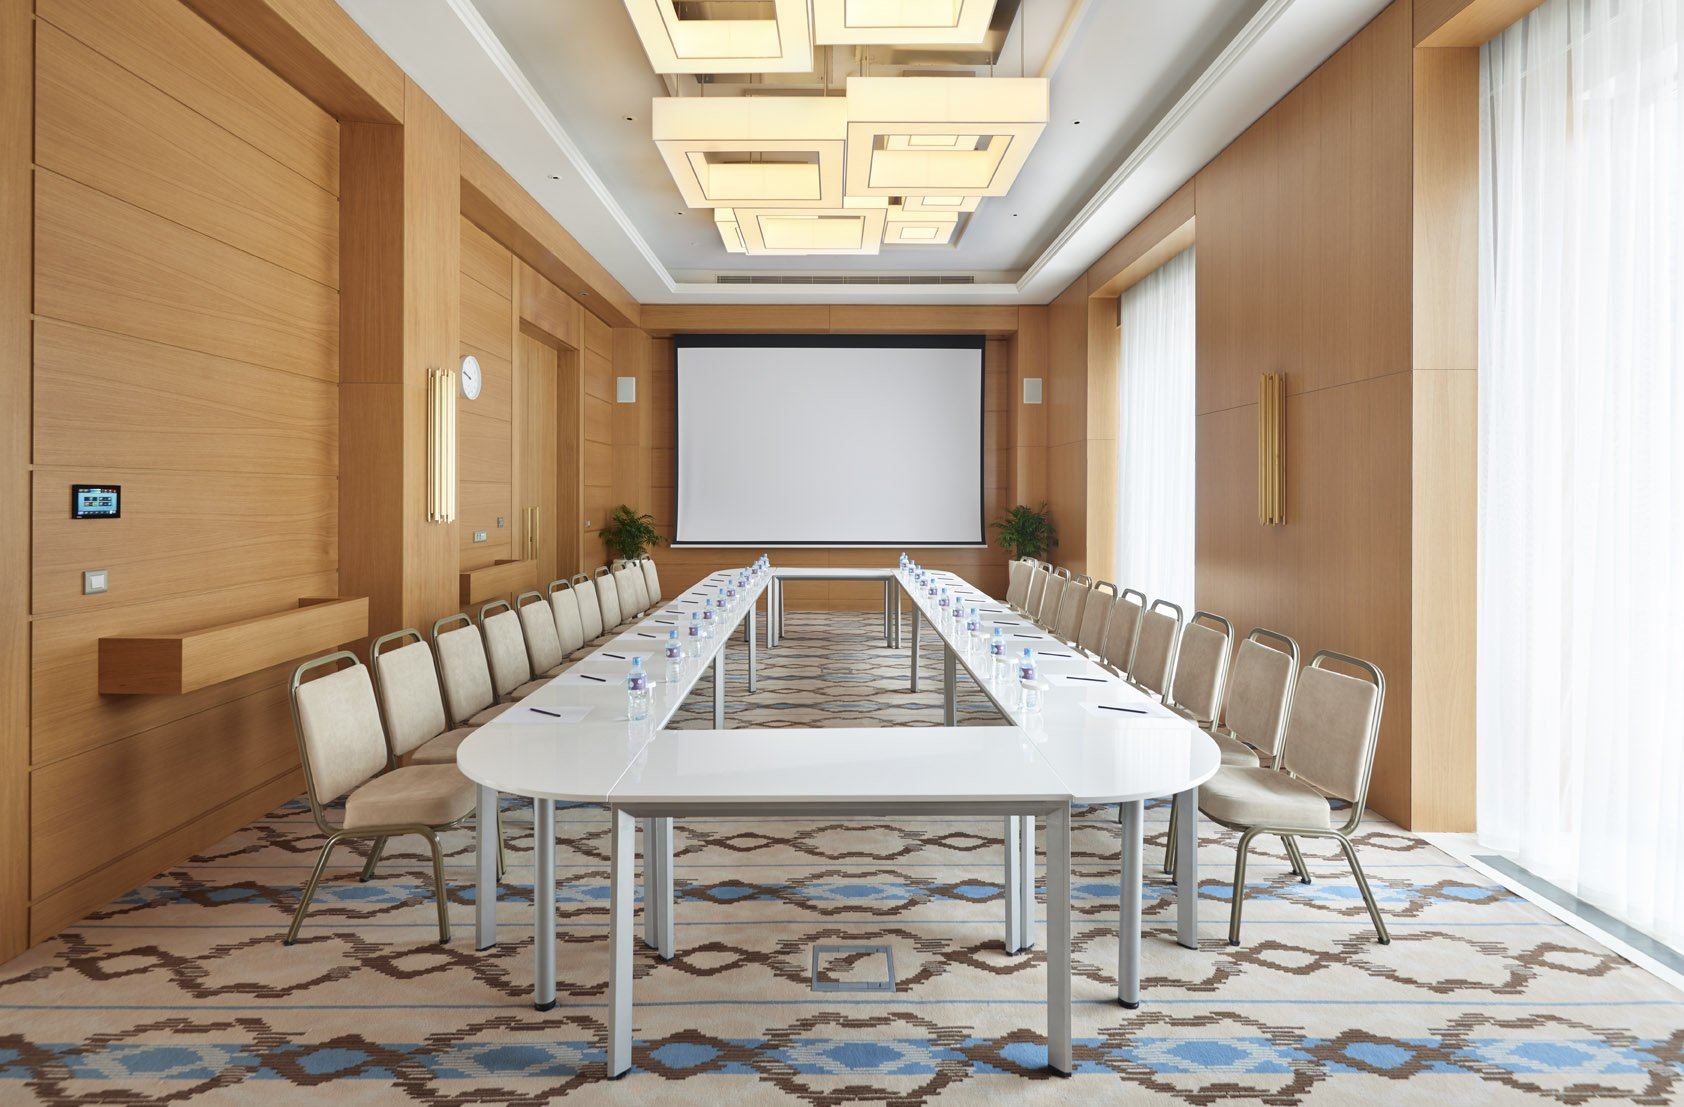 Boardroom Day - Hyatt Regency